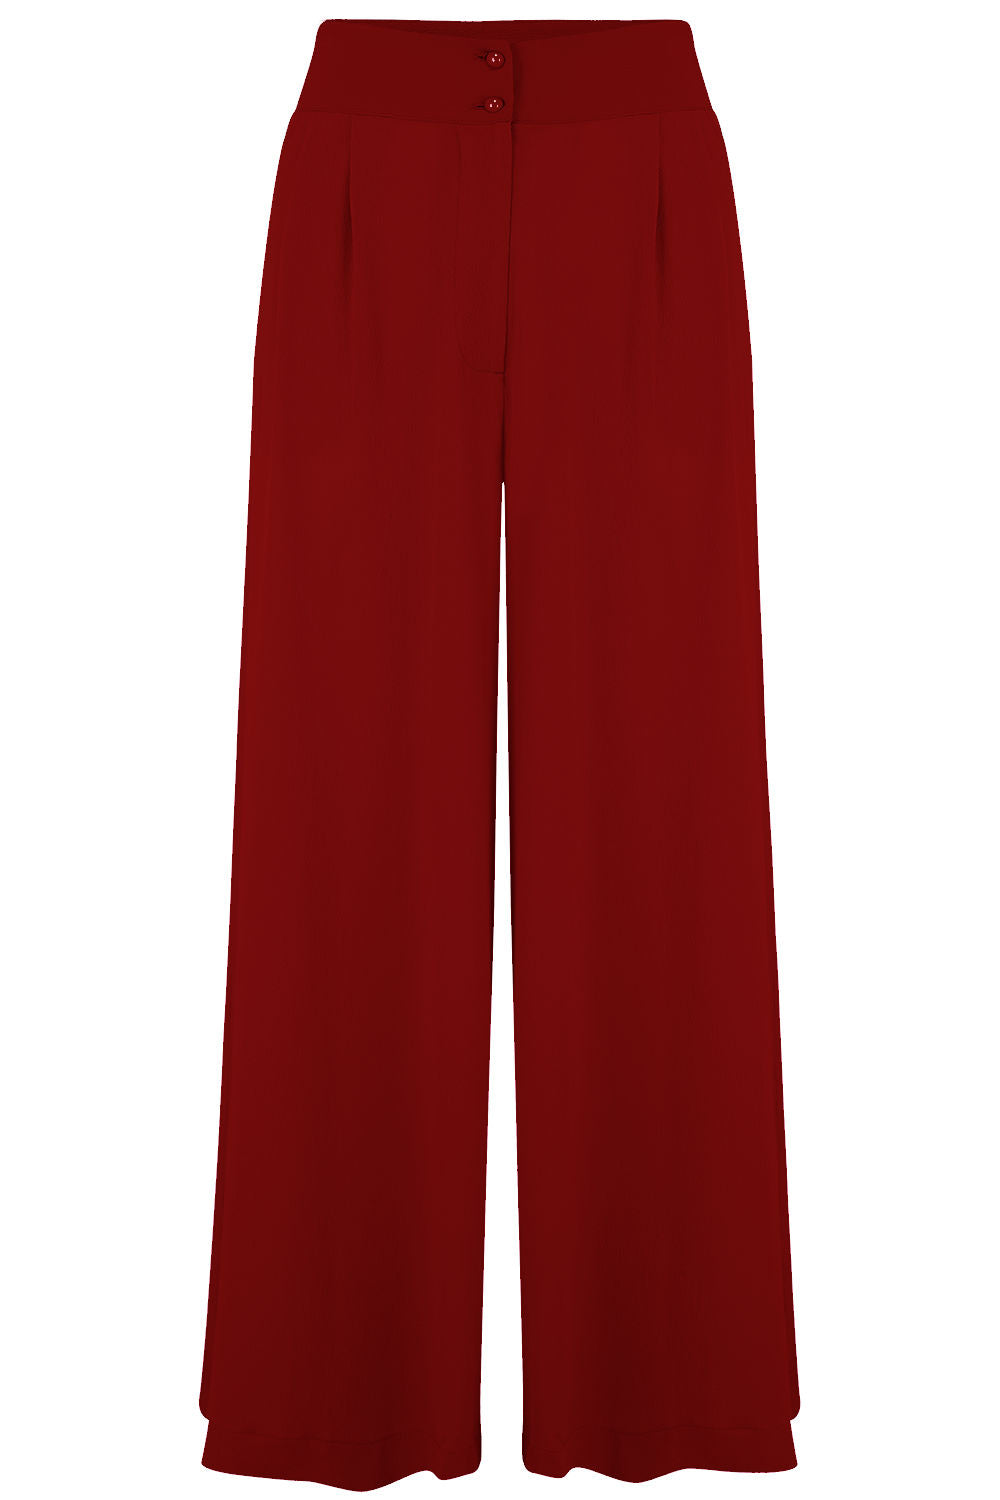 1950s Pants History for Women The Sophia Plazzo Wide Leg Trousers in Wine Easy To Wear Vintage Inspired Style £39.00 AT vintagedancer.com